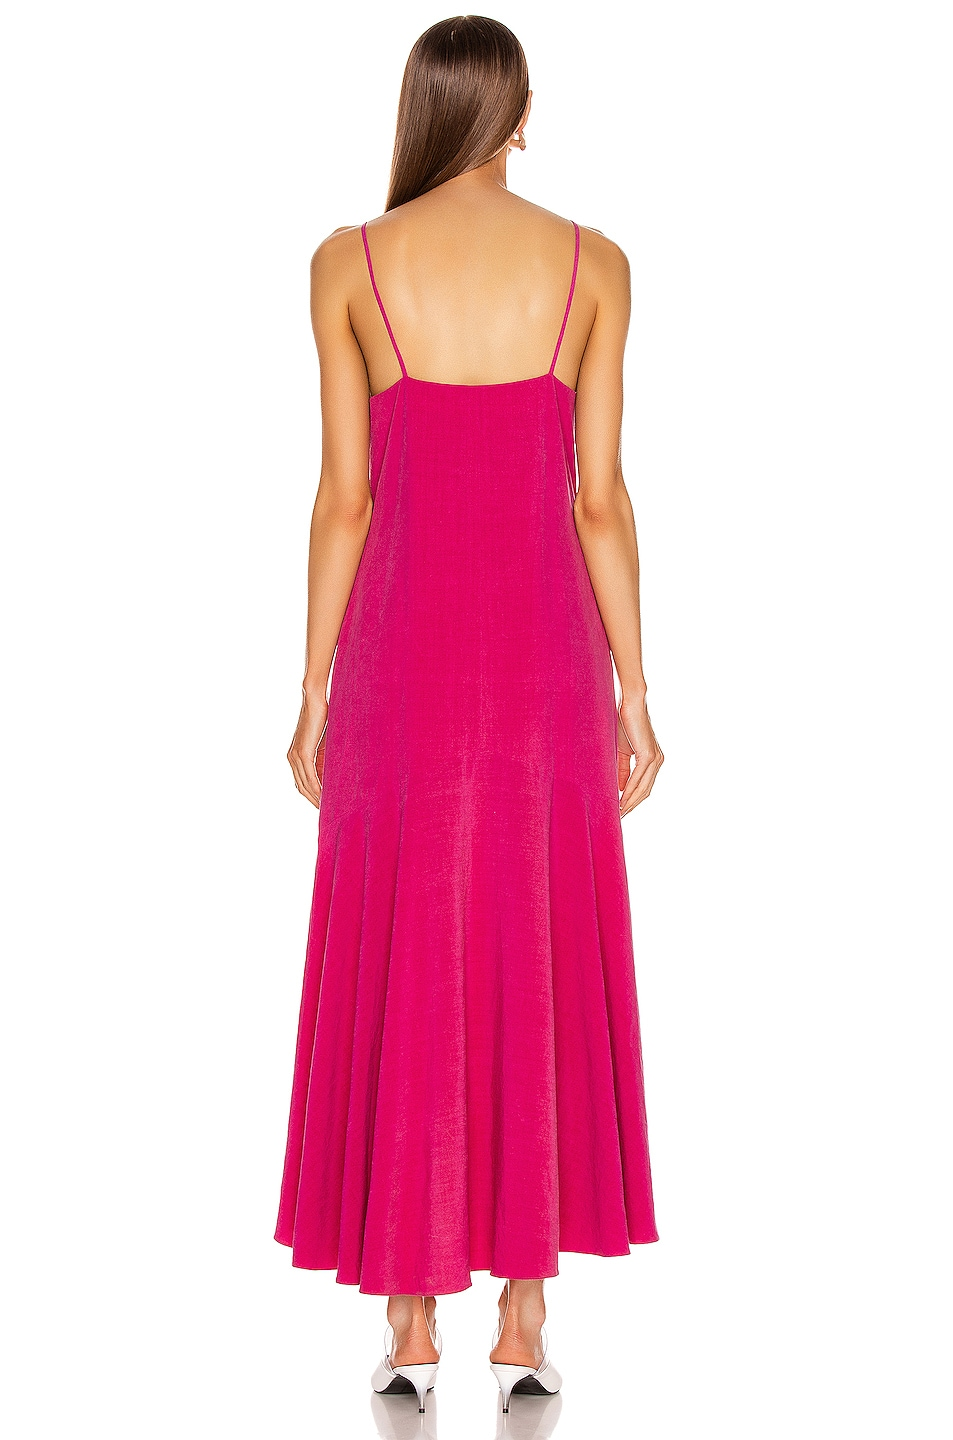 Image 3 of Mara Hoffman Diana Dress in Hot Pink